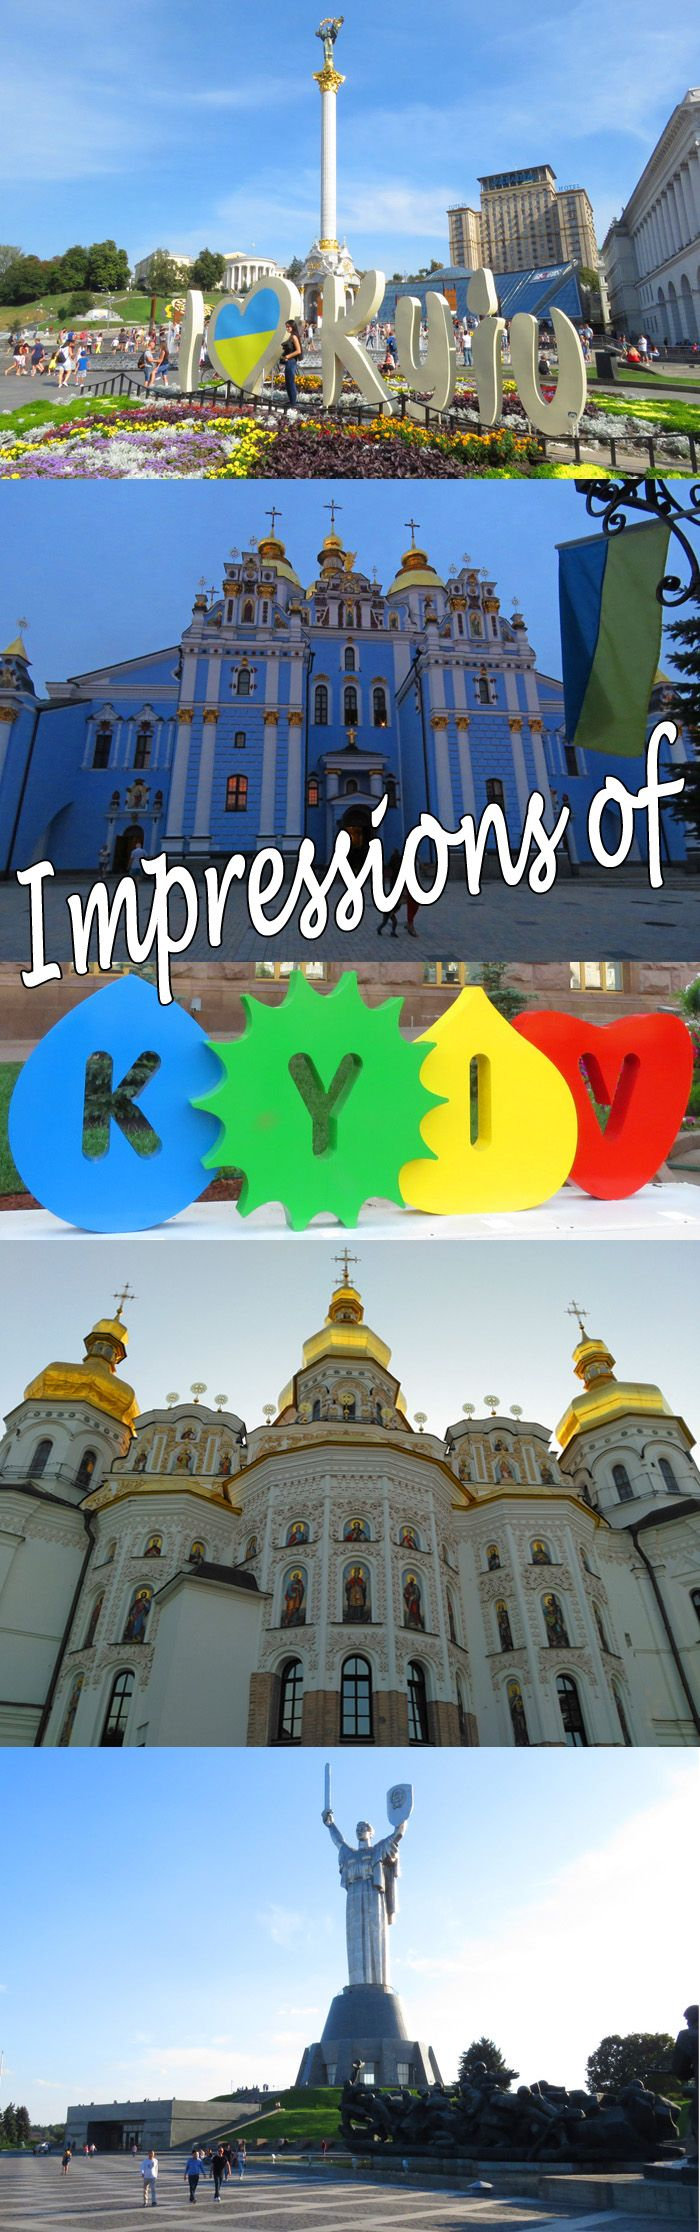 Impressions of Kiev (Kyiv). And comparing it to other